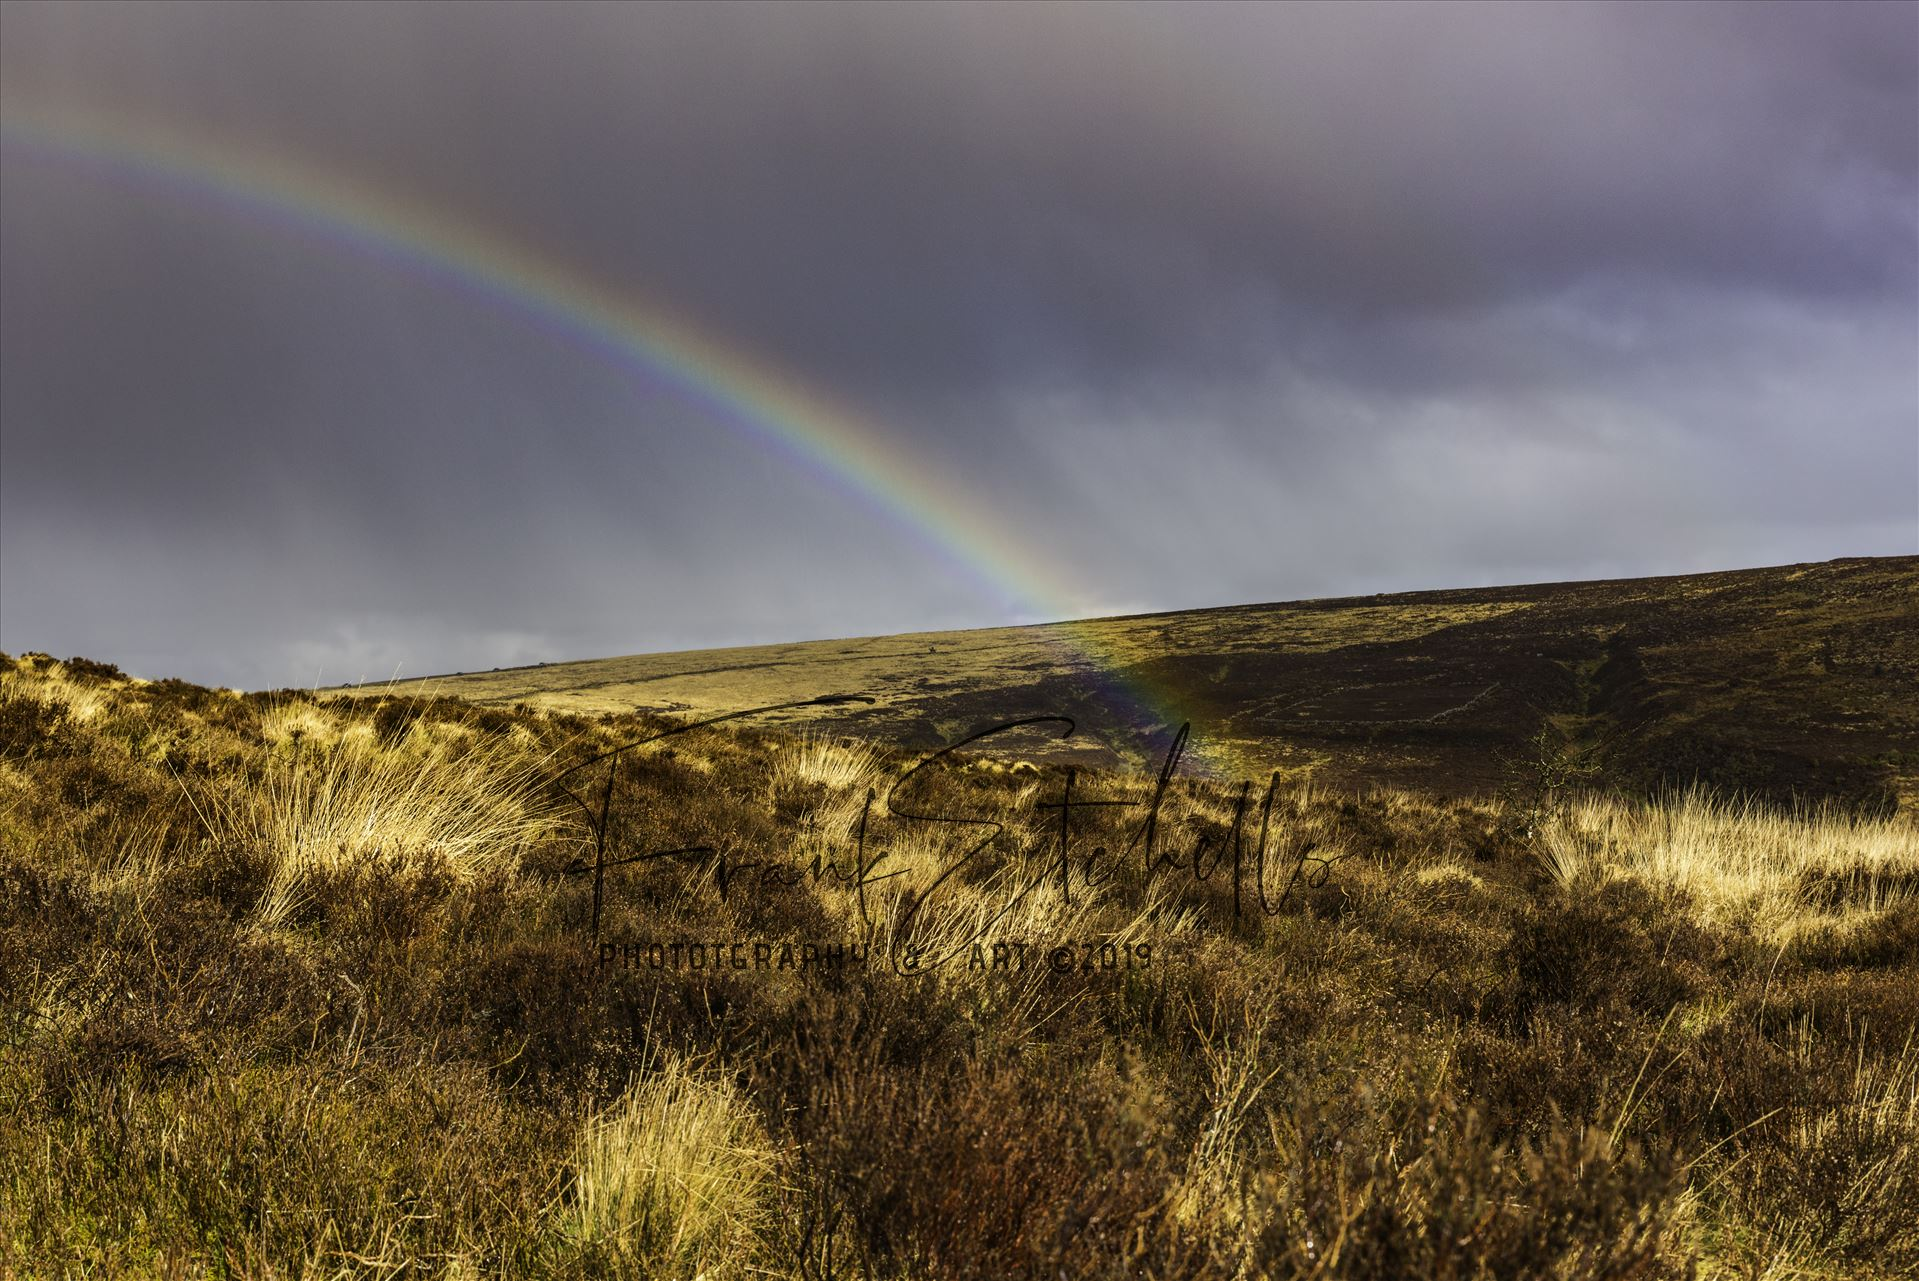 Dartmoor Rainbow 01 - From Warren House Inn towards Bennett's Cross, Dartmoor, after a brief downfall of rain the sun created this rainbow with one end disappearing between the folds in the land. by Frank Etchells Photography